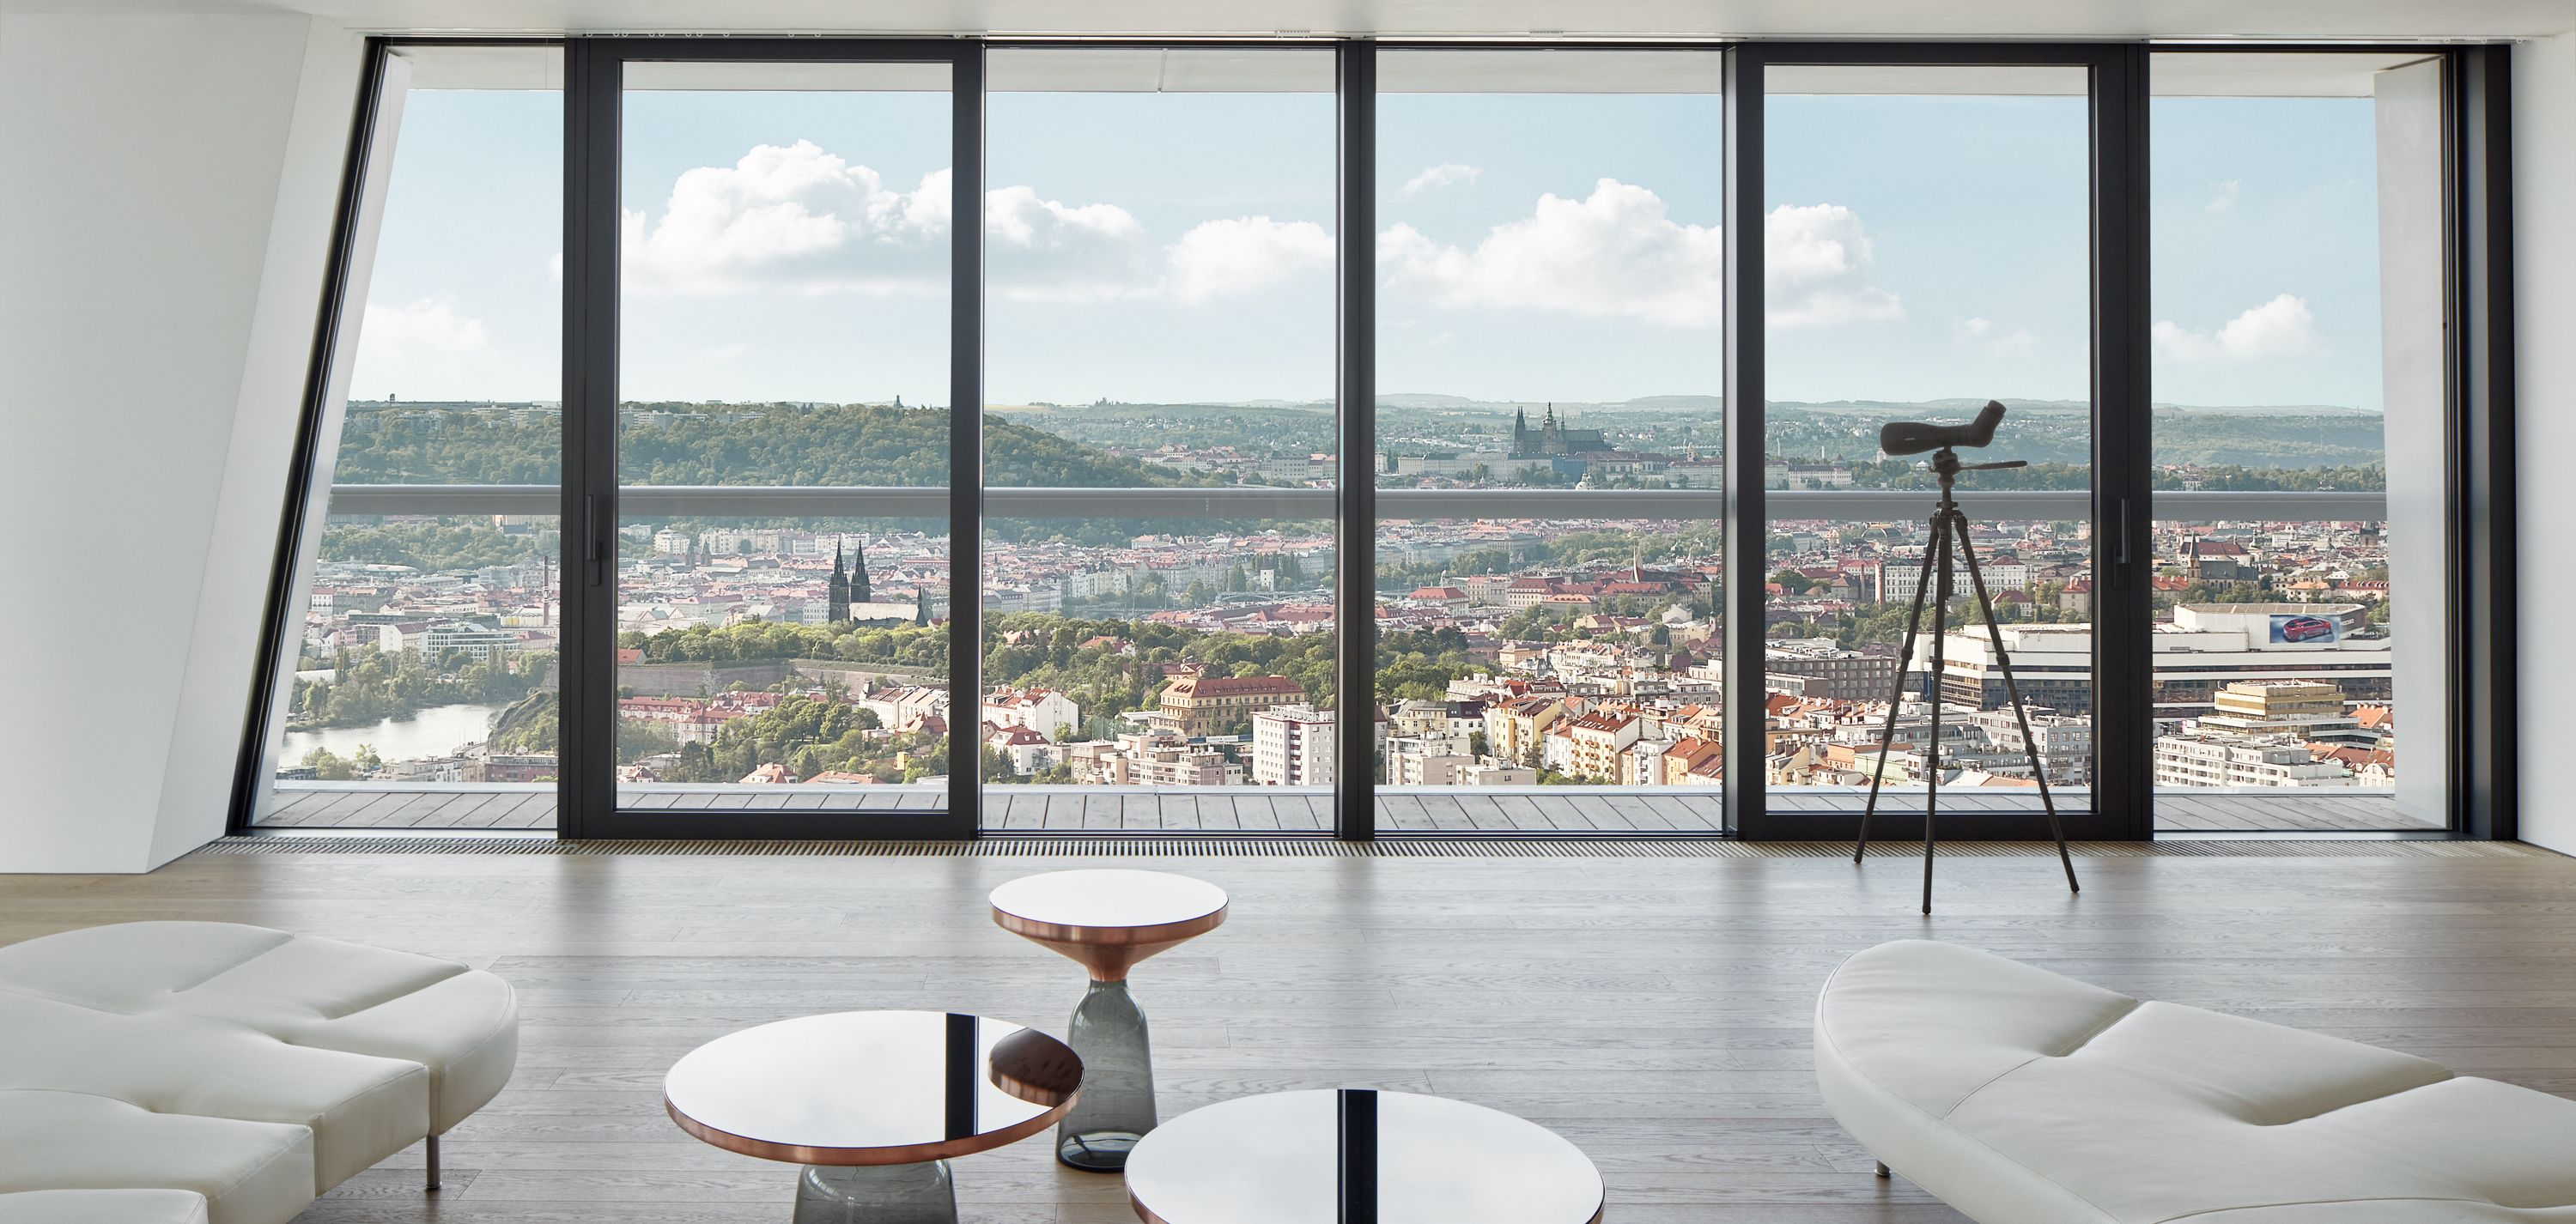 Penthouses With City Views Luxury Triplex Penthouse In Prague Czech Republic In 2021 Pent House International Real Estate City House